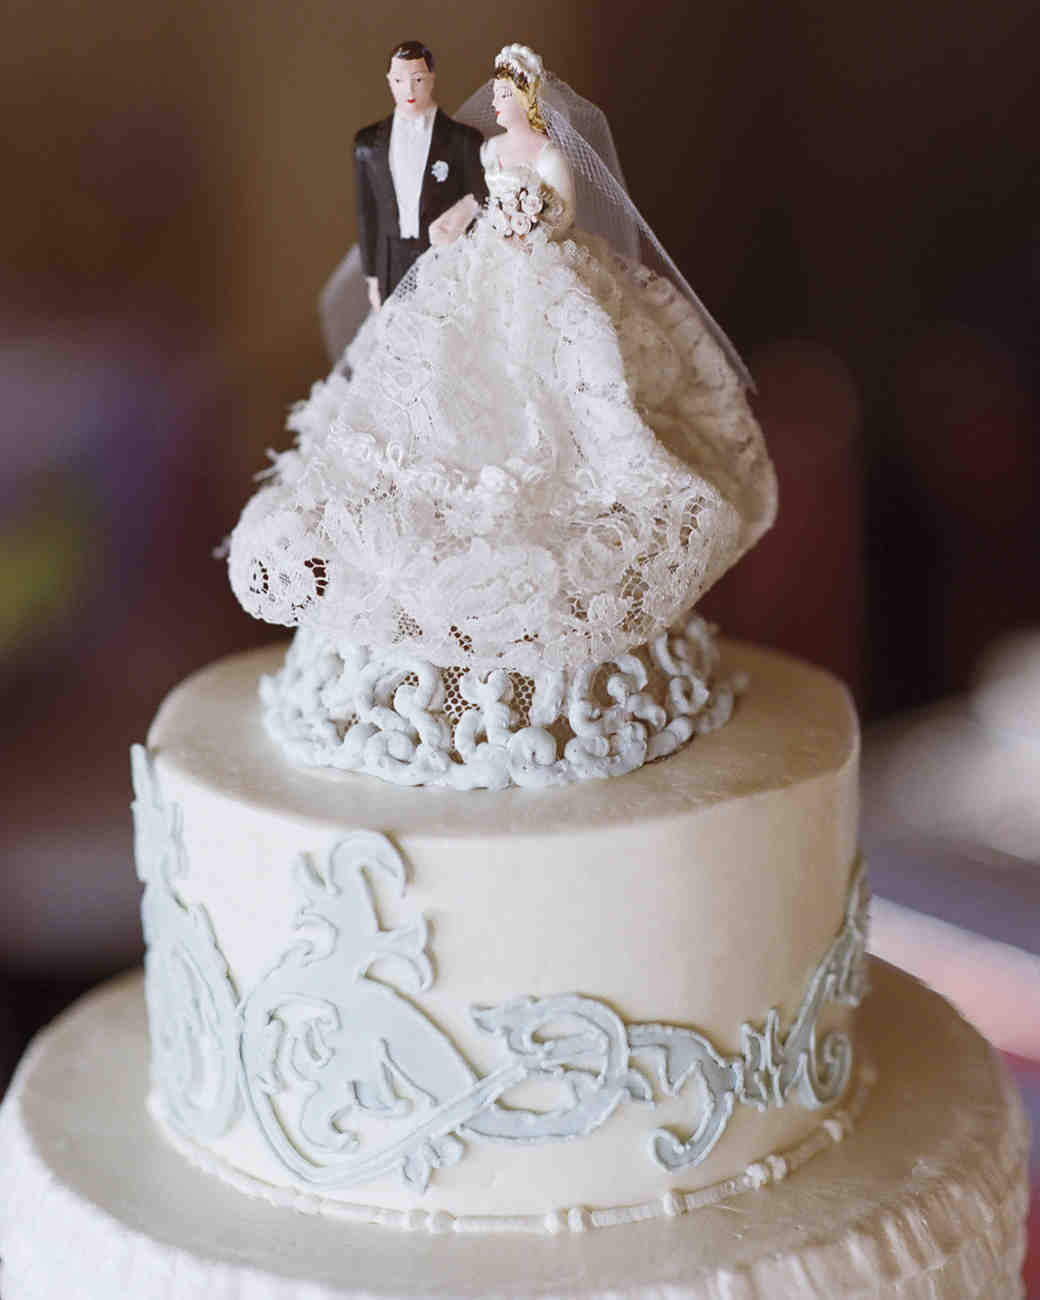 Wedding Cakes With Toppers  36 of the Best Wedding Cake Toppers